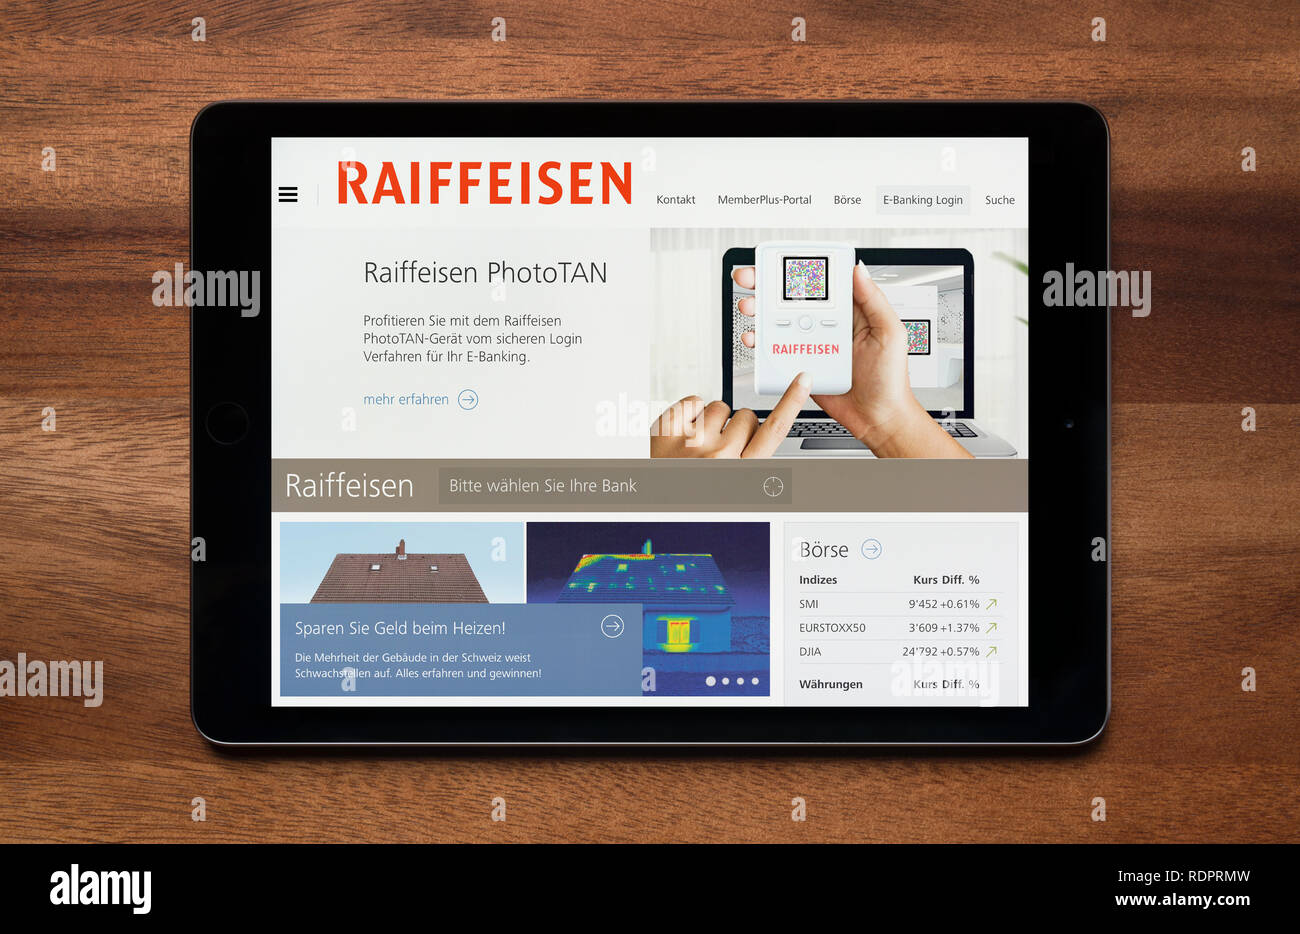 The website of Raiffeisen is seen on an iPad tablet, which is resting on a wooden table (Editorial use only). - Stock Image